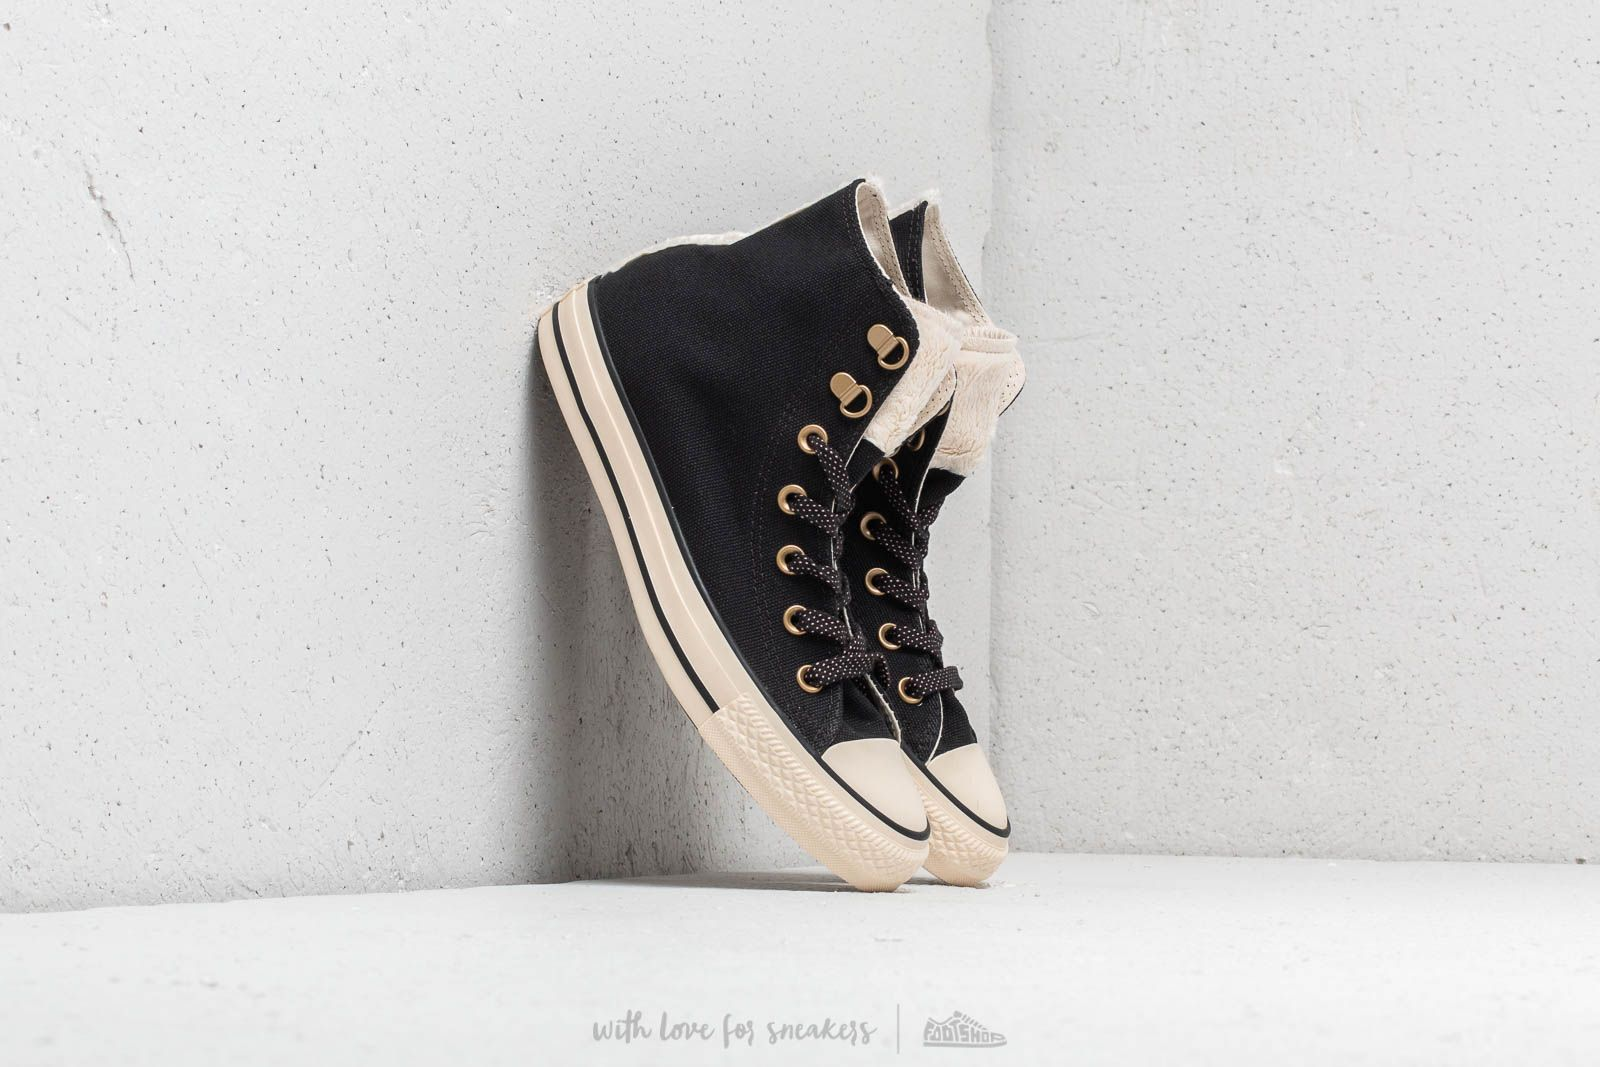 17ad575a3285 Converse Ctas Lift Ripple Hi Black  Natural Ivory  Rust Pink at a great  price